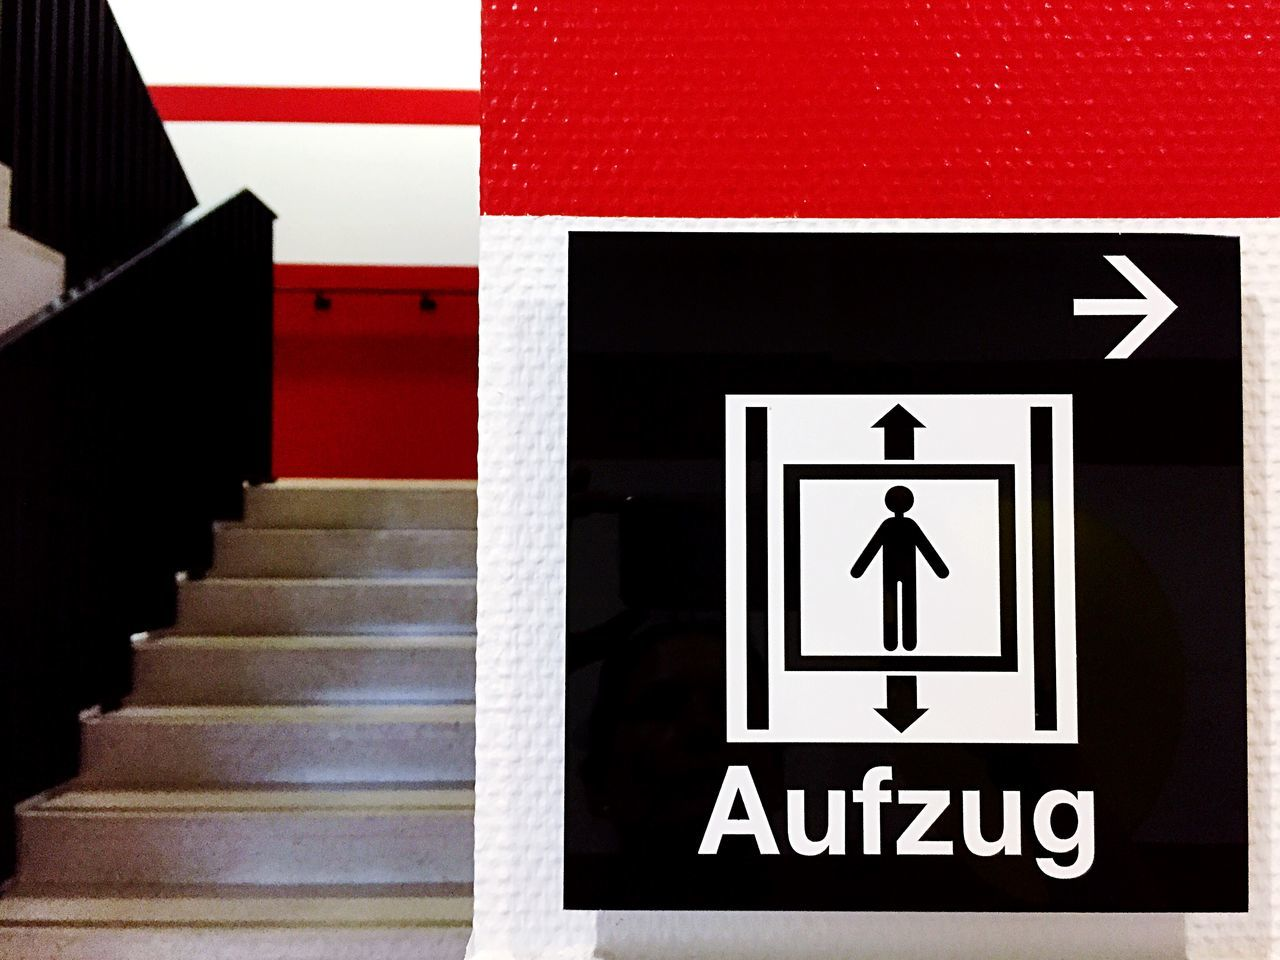 Stairs Lift Stairways Signs Red Aufzug Cologne RheinEnergieStadion